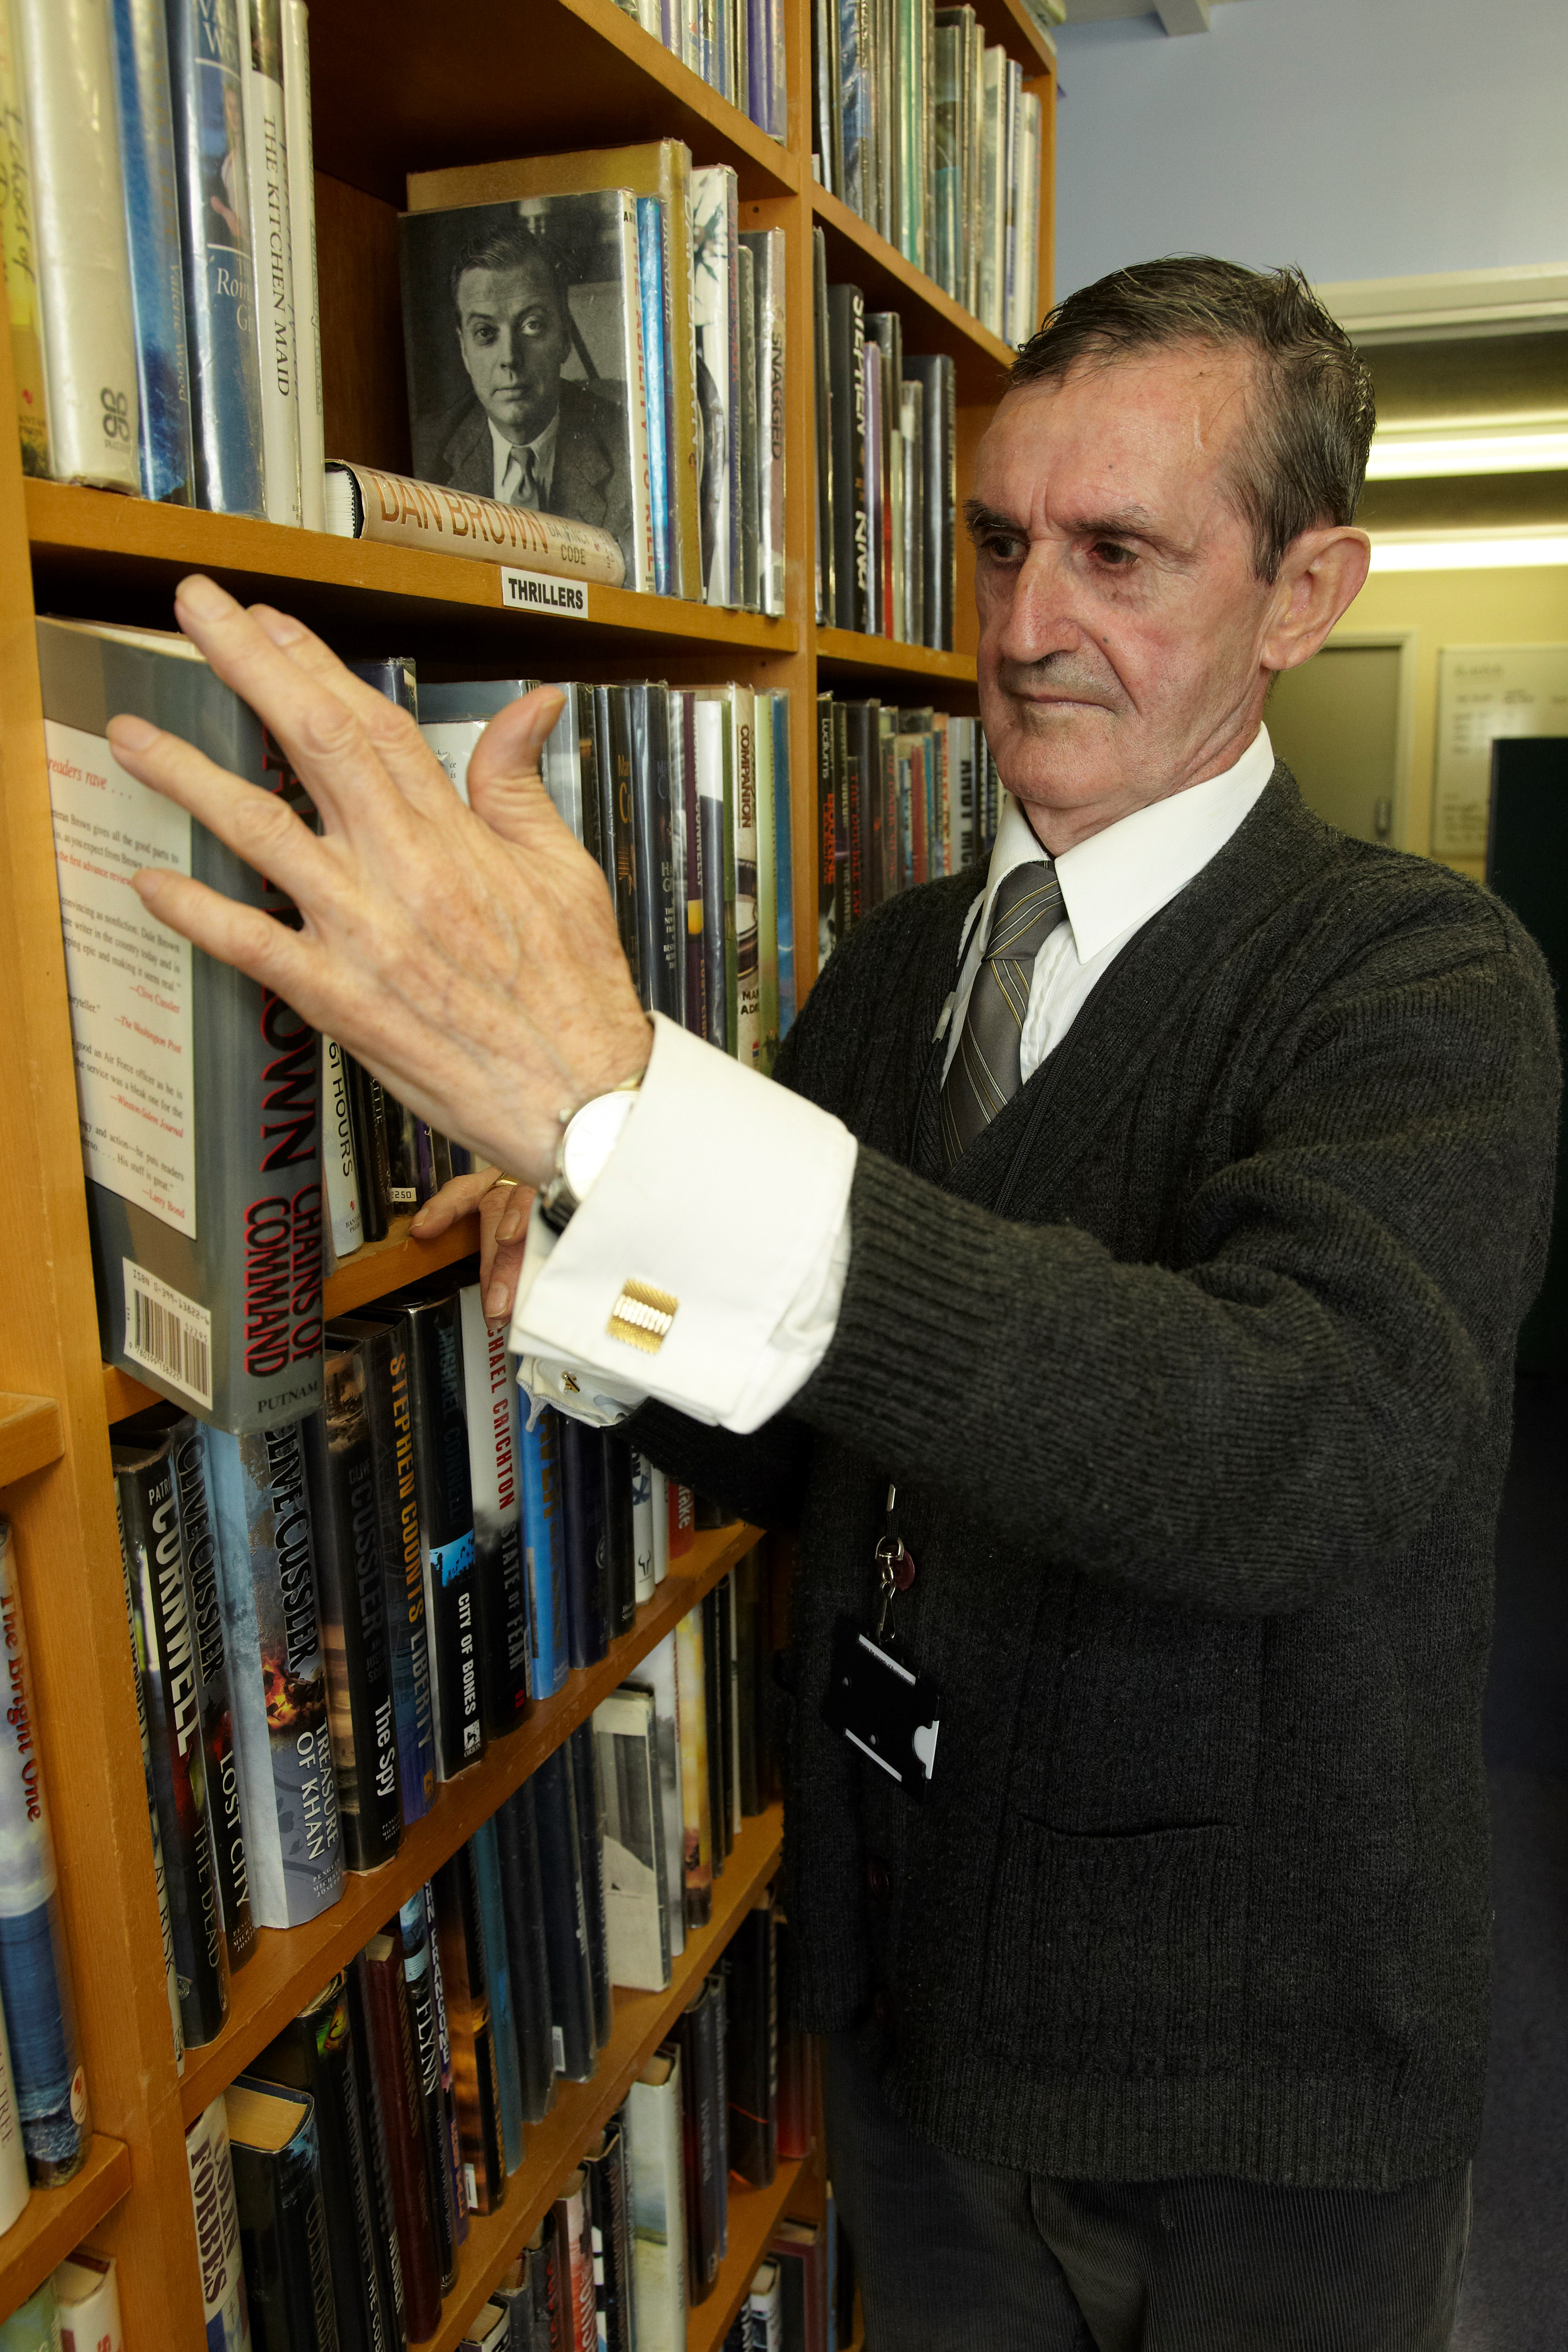 Kent House service user John standing in front of bookshelves in a library